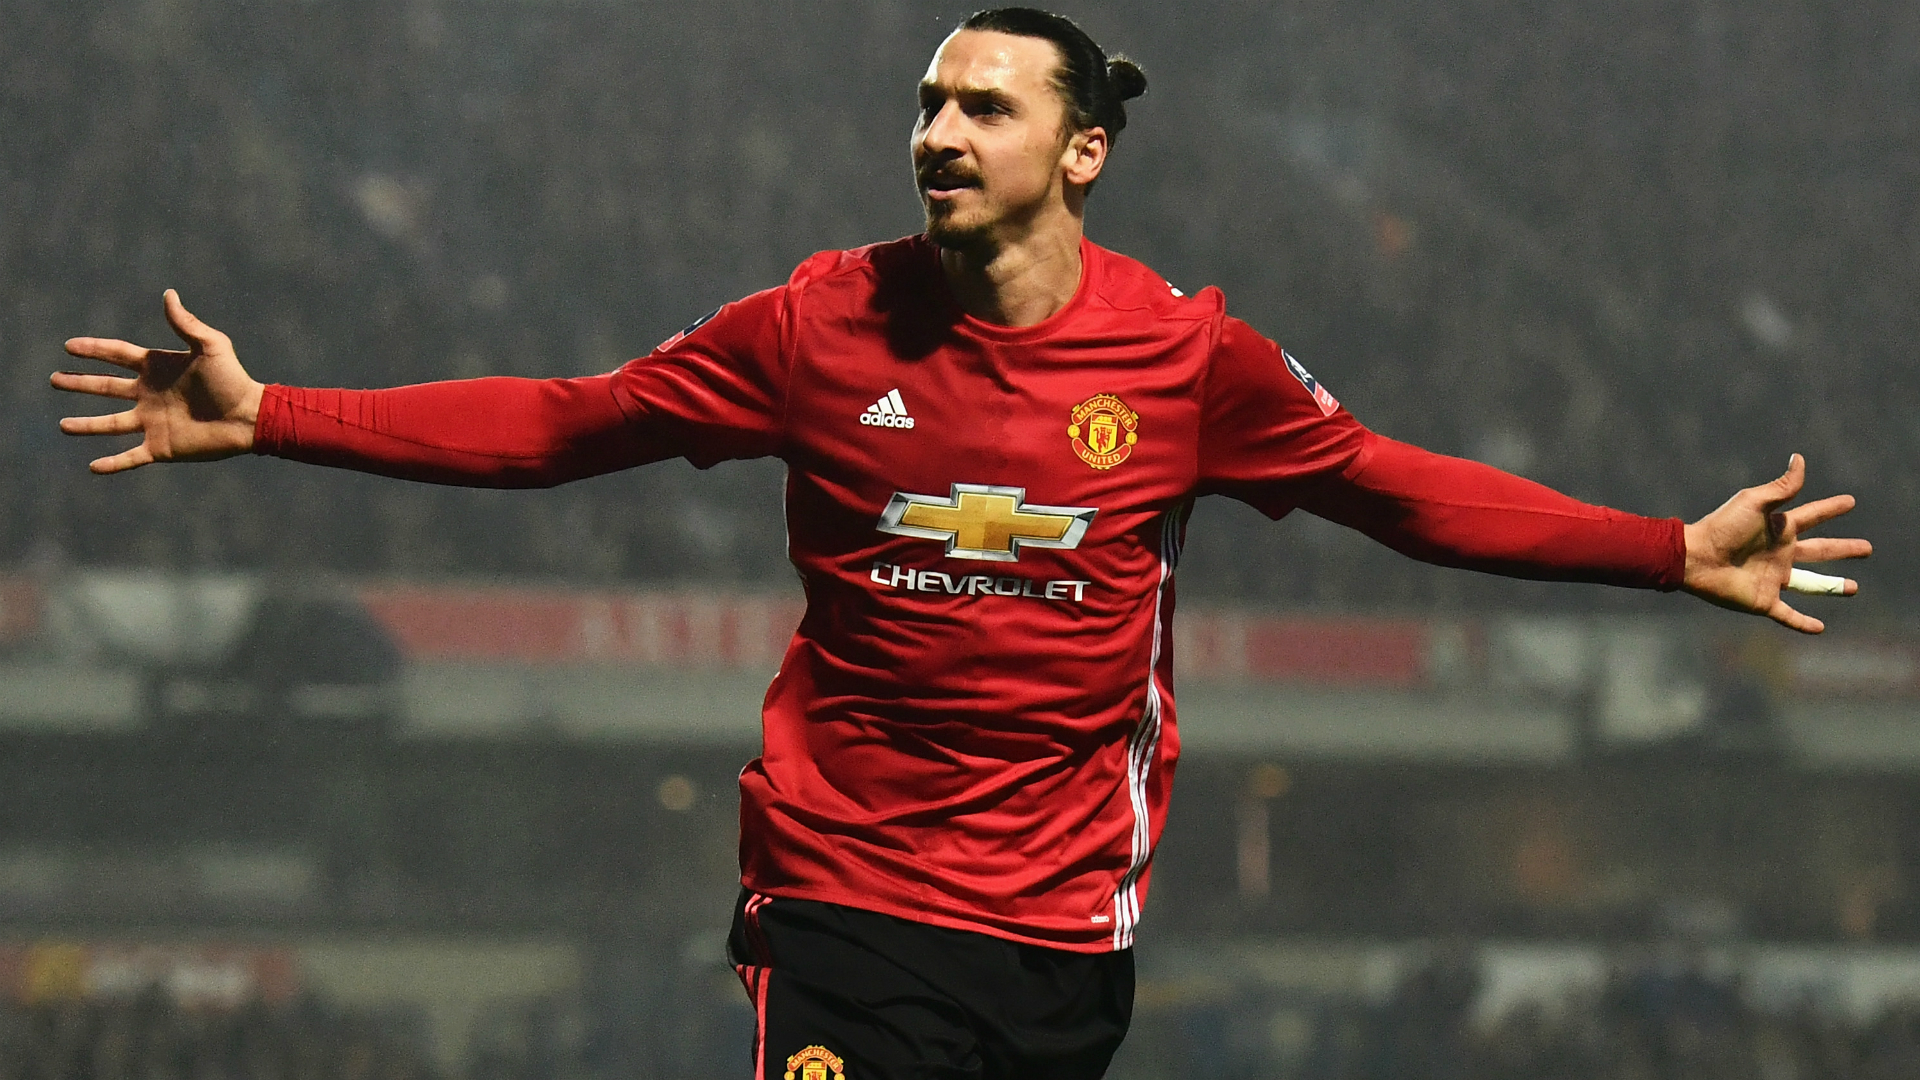 'Lion' Ibrahimovic basks in cup heroics glory